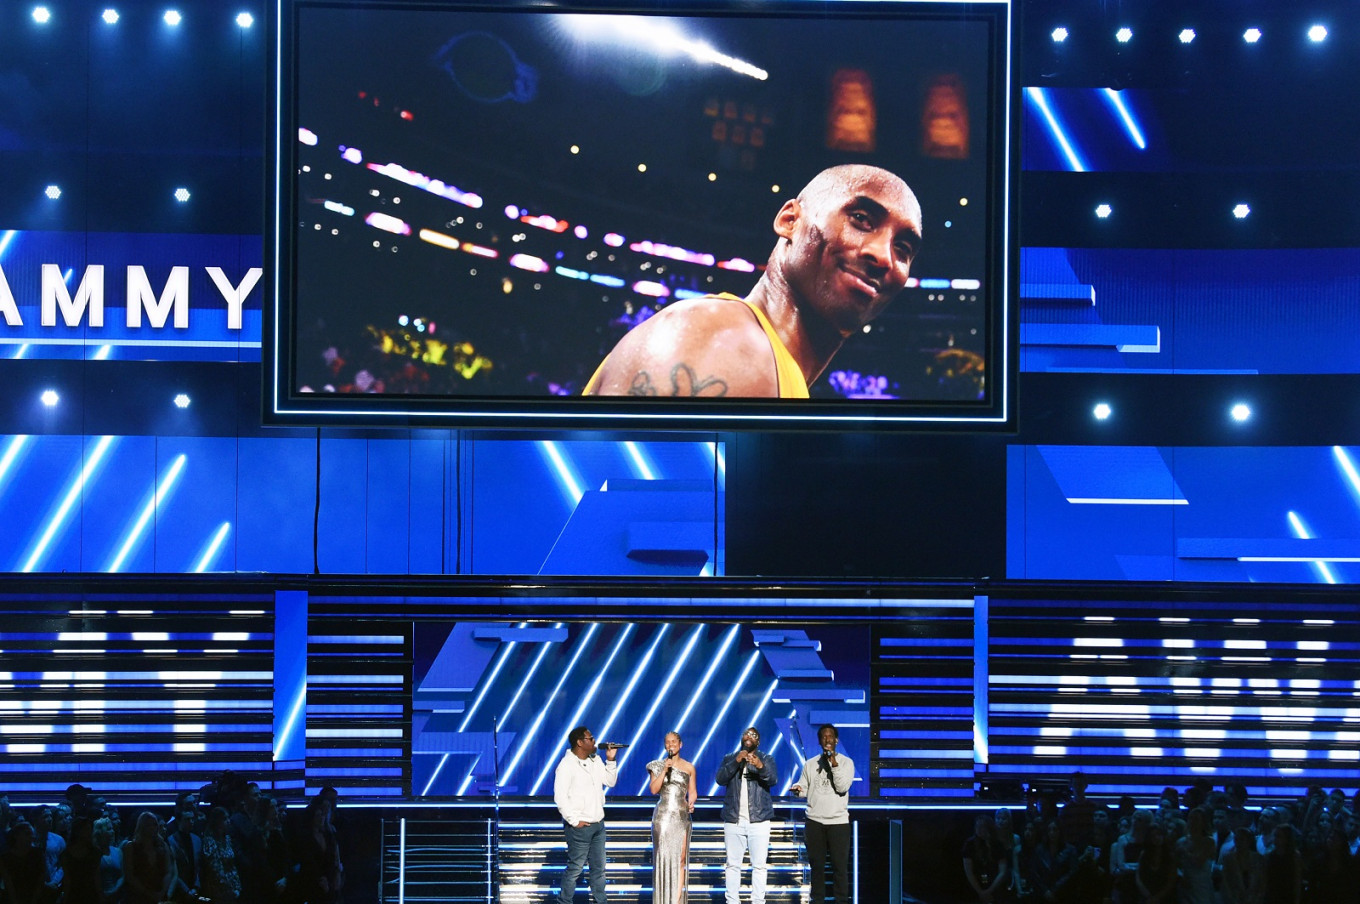 Grammys gala begins with love letter to late NBA star Kobe Bryant